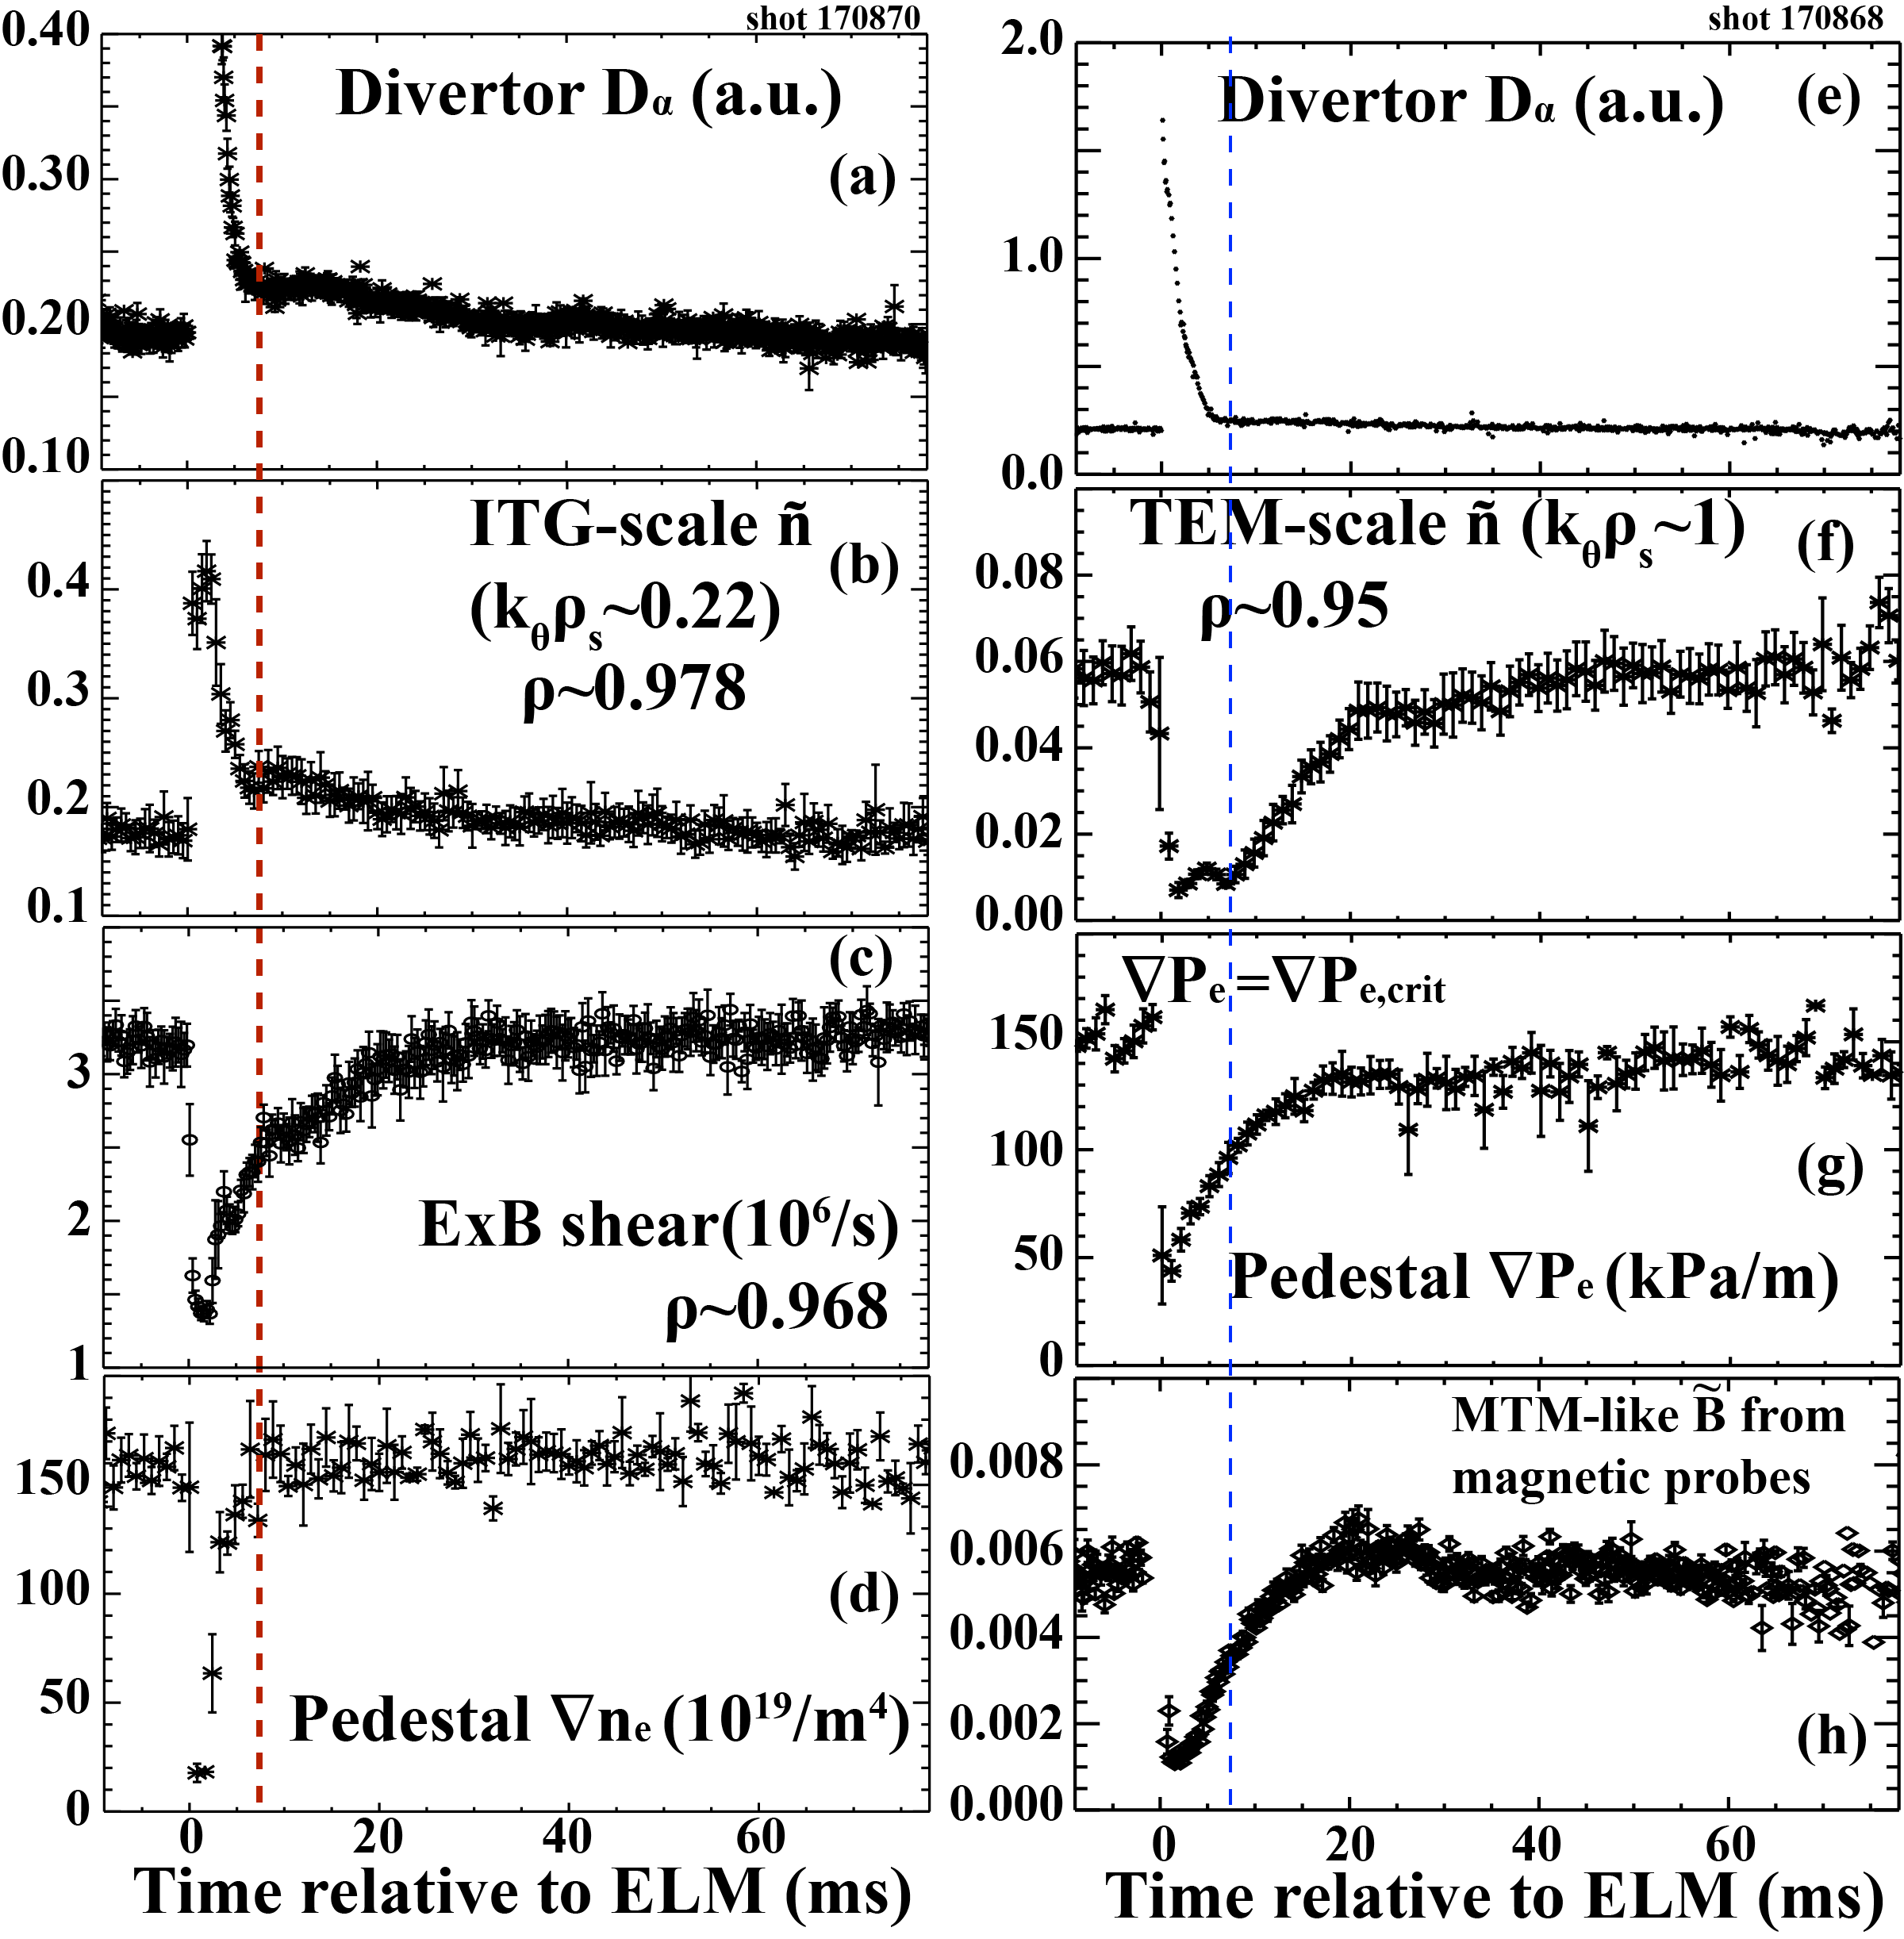 (a)-(d) Correlations in evolutions of pedestal foot localized ITG-scale ñ, local E$\times$B shear, and ∇n$_{e,ped}$. The red dashed line indicates the time when ITG-scale ñ is substantially suppressed and ∇n$_{e,ped}$ is saturated ; (f)-(h) Correlations in evolutions of TEM-scale ñ and MTM-like $\tilde{B}$ w.r.t. ∇P$_{e,ped}$ in the steep gradient region. The blue dashed line indicates the time when ∇P$_{e,ped}$ reaches the critical gradient level for which TEM-scale ñ increases.